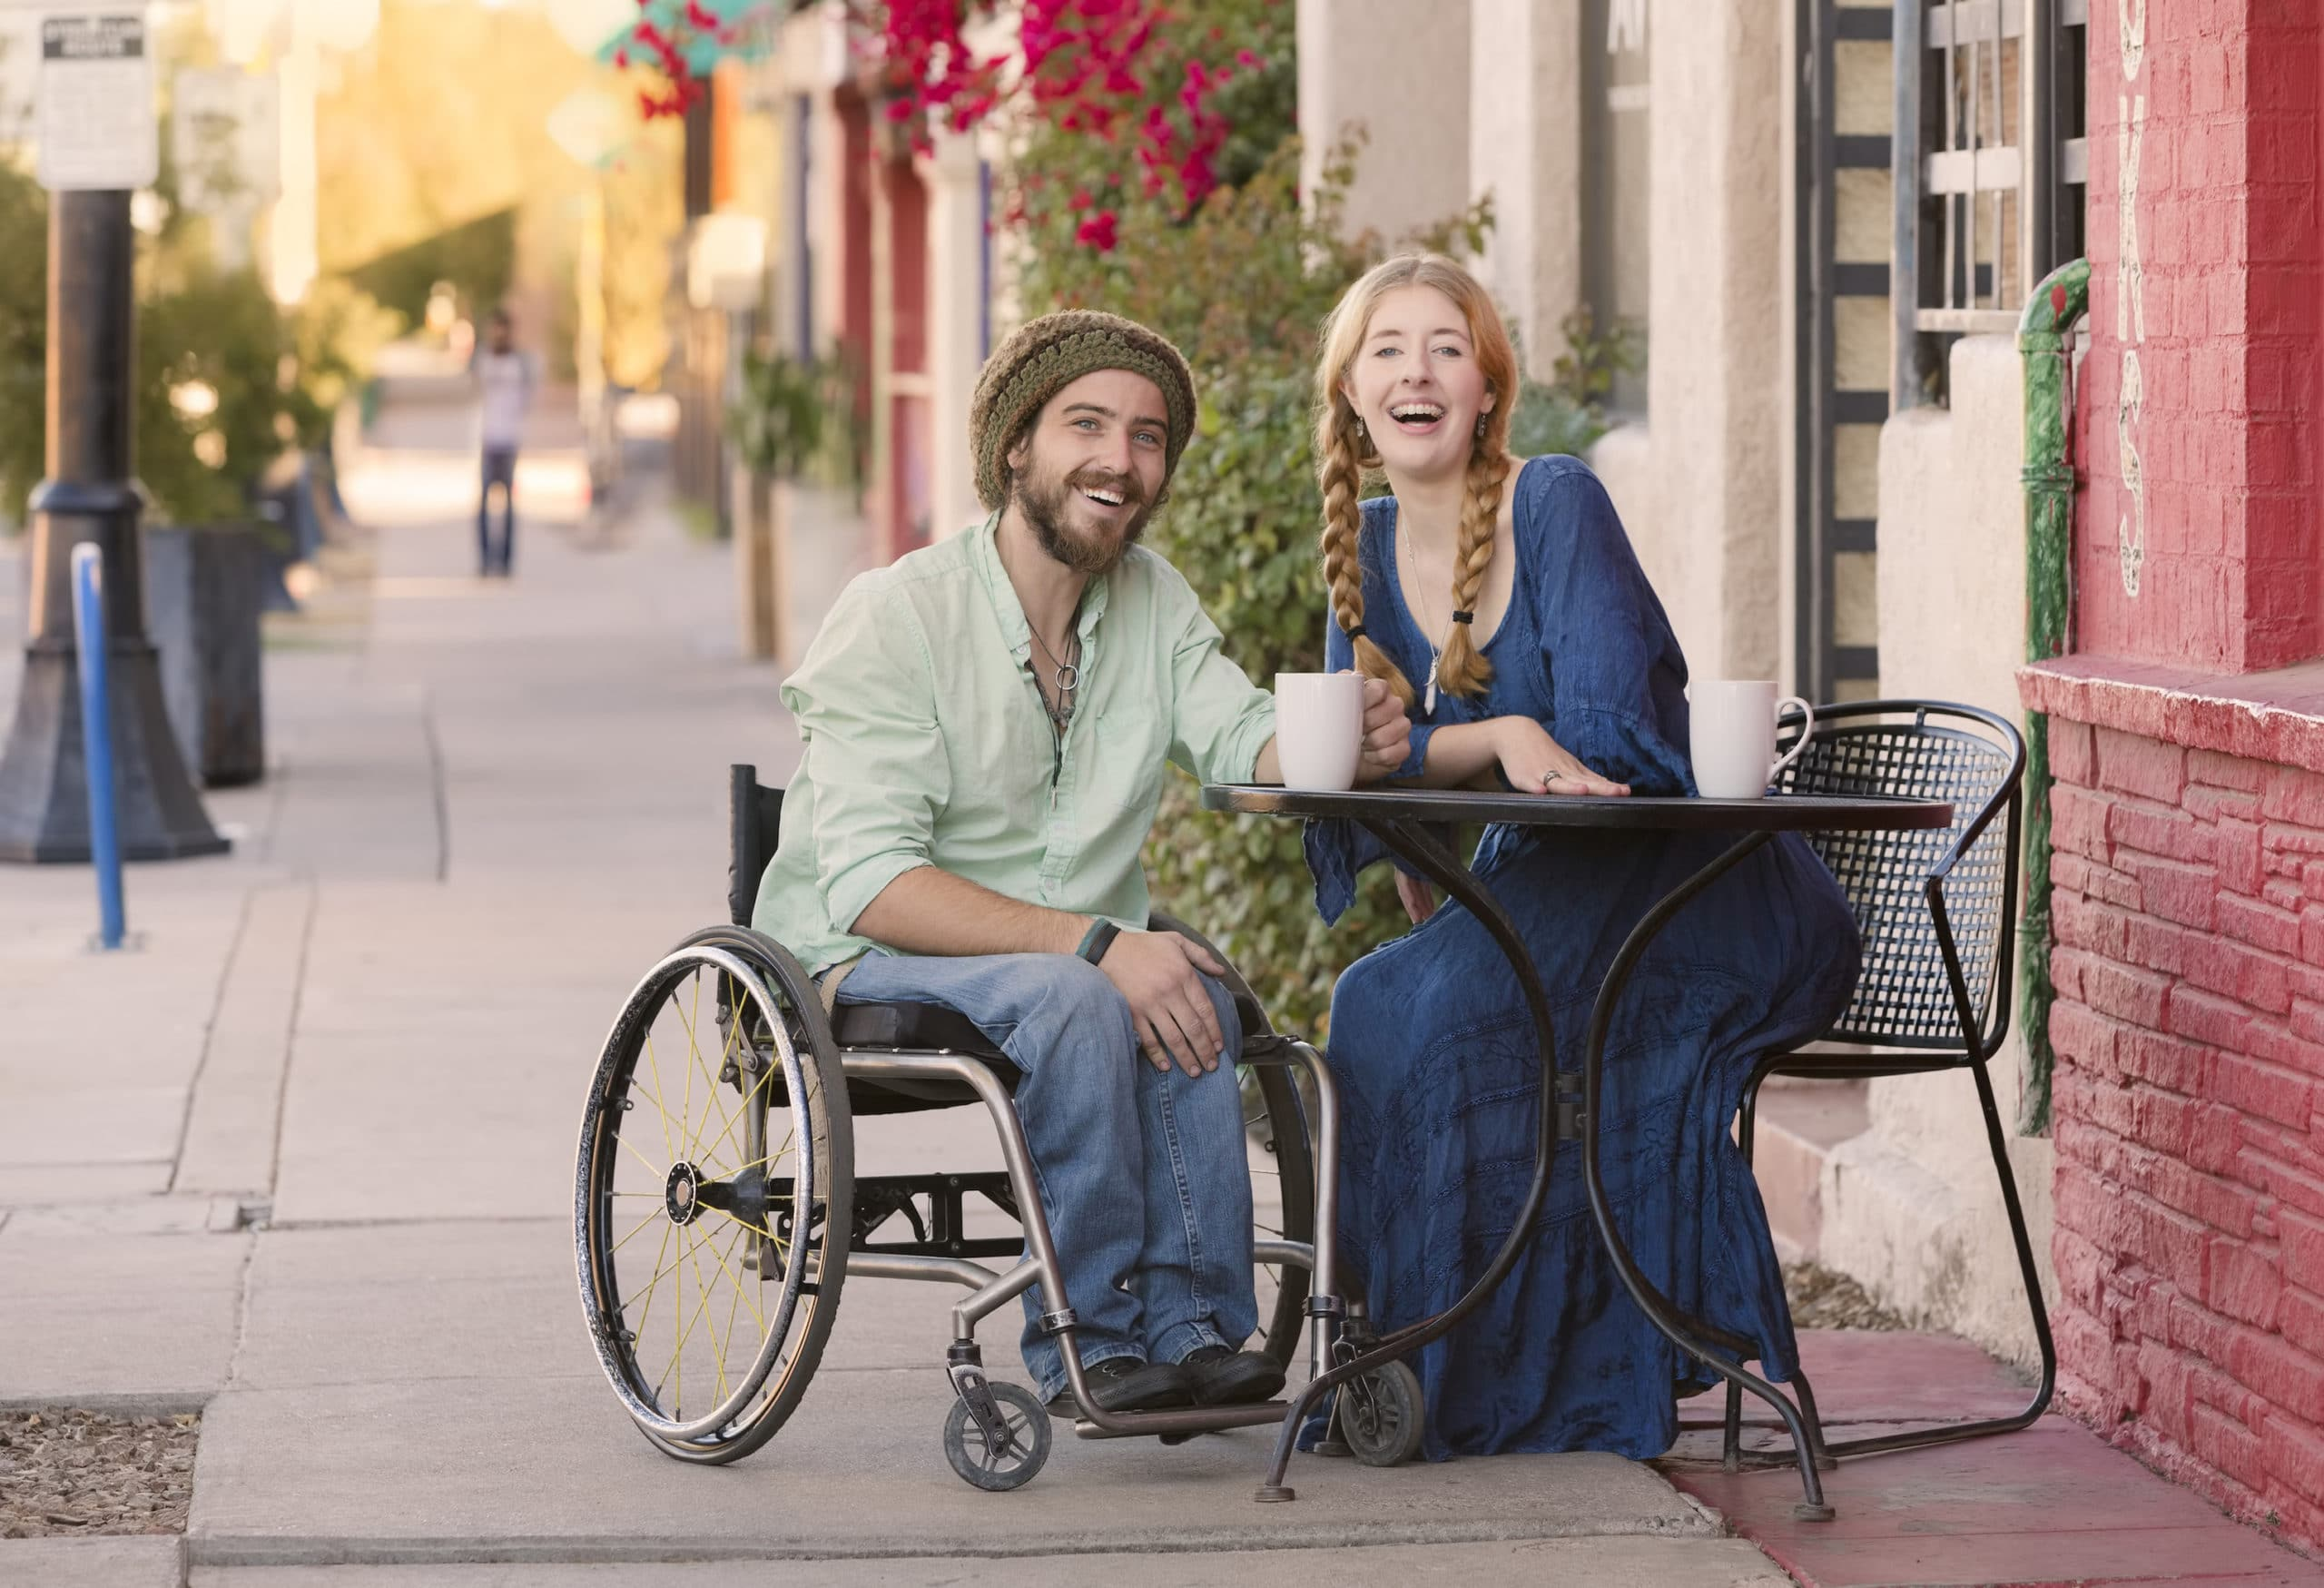 Woman and man in wheelchair having coffee at outdoor cafe table